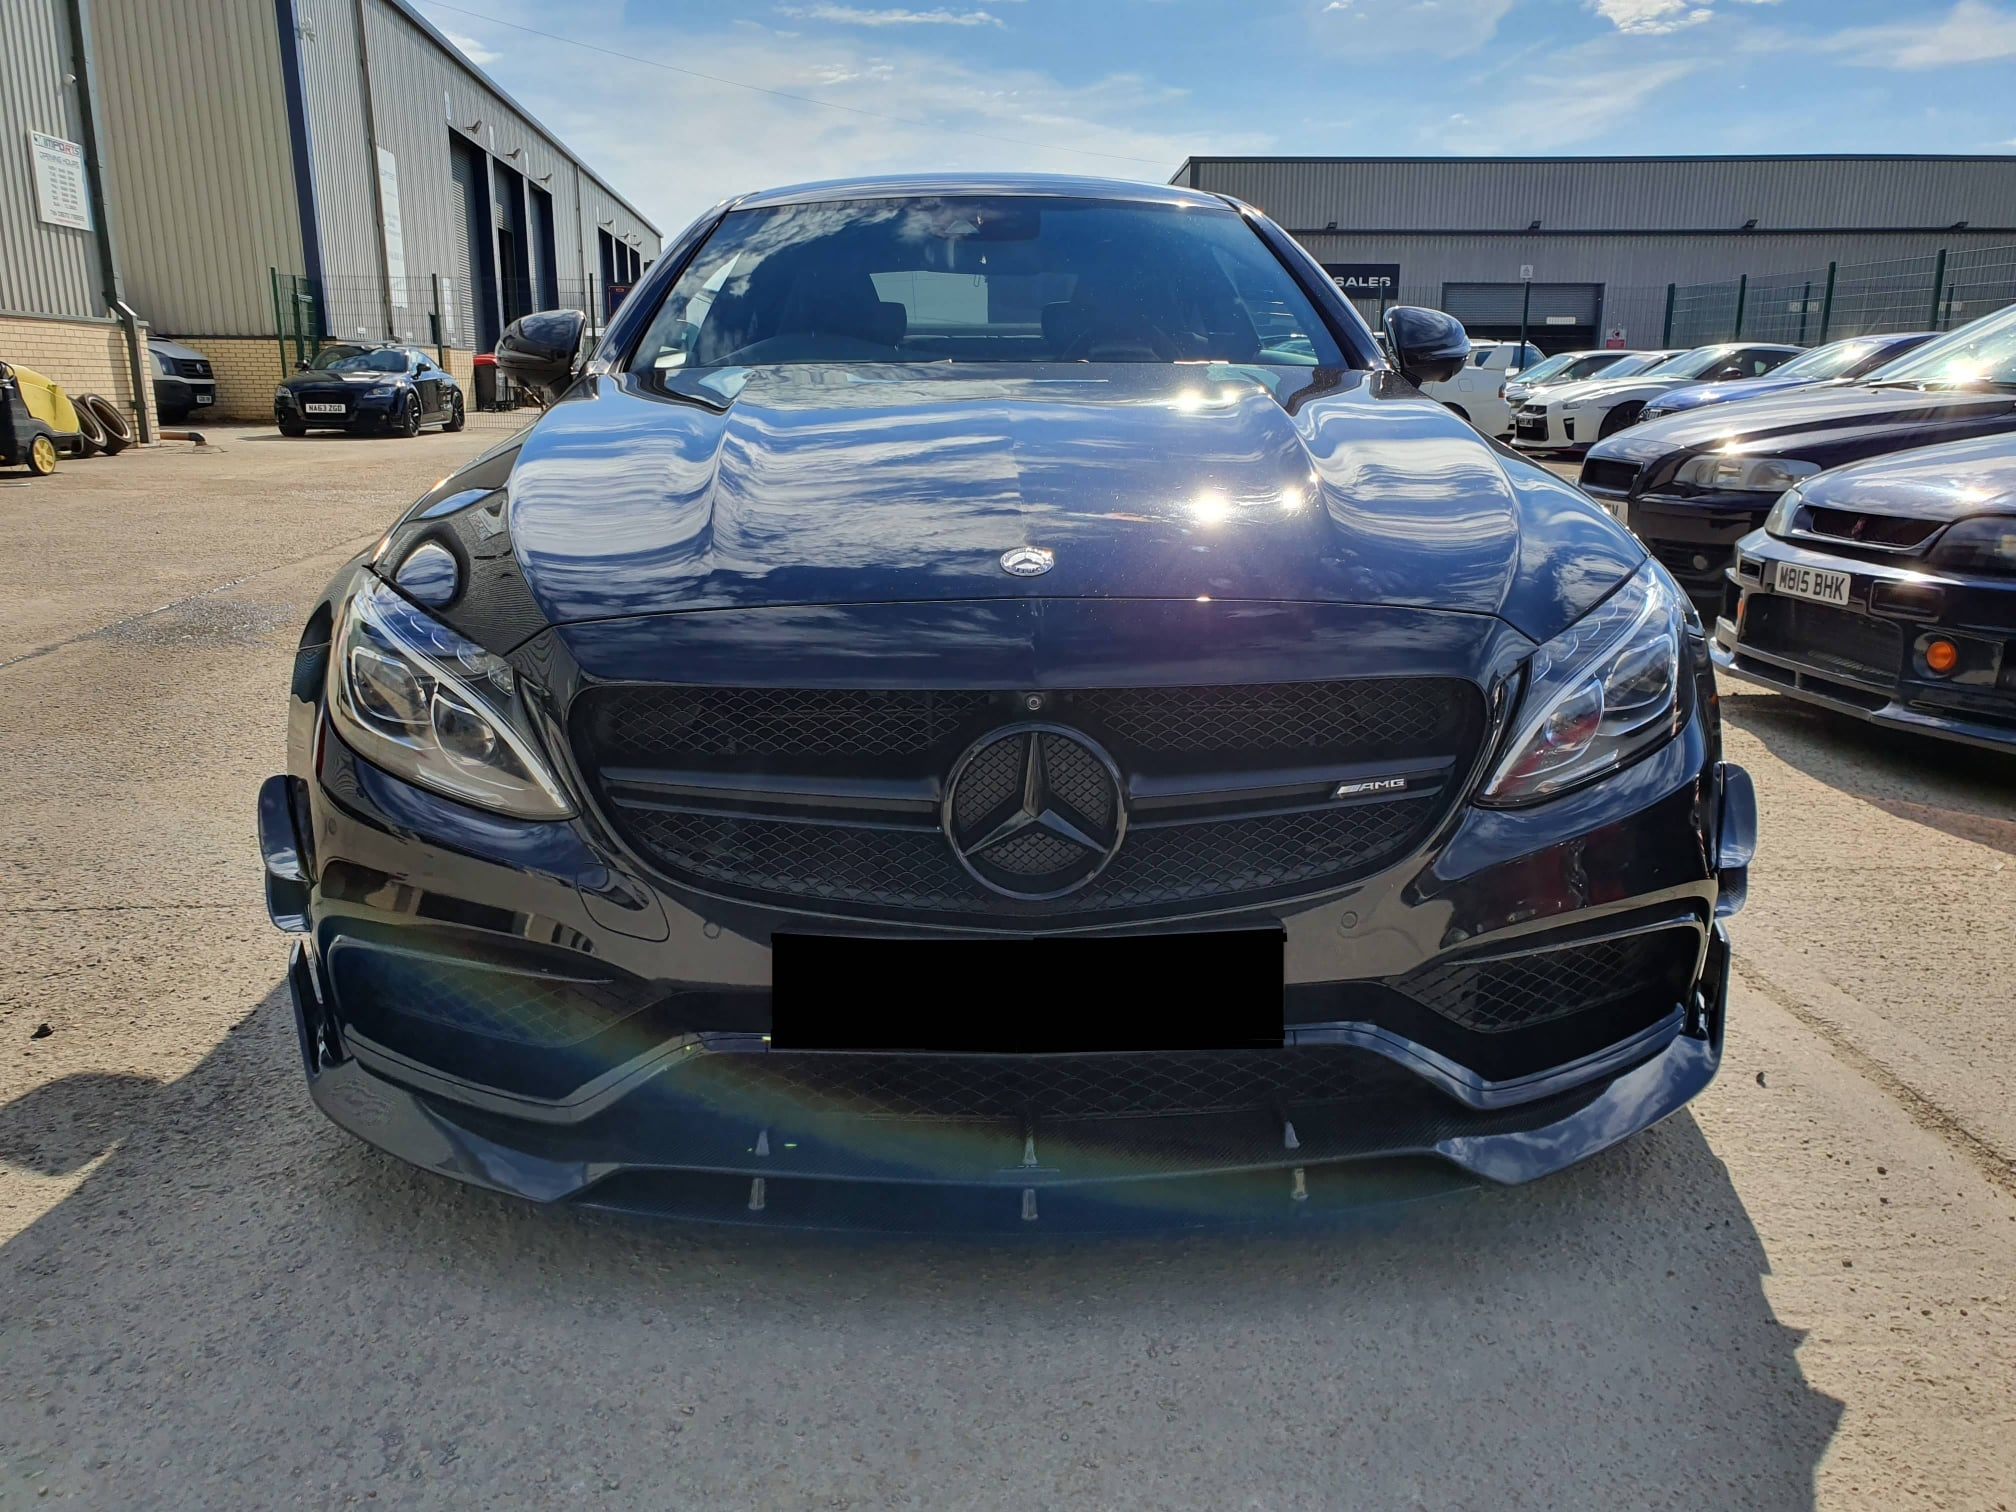 Mercedes C63s AMG for stage 2 tune